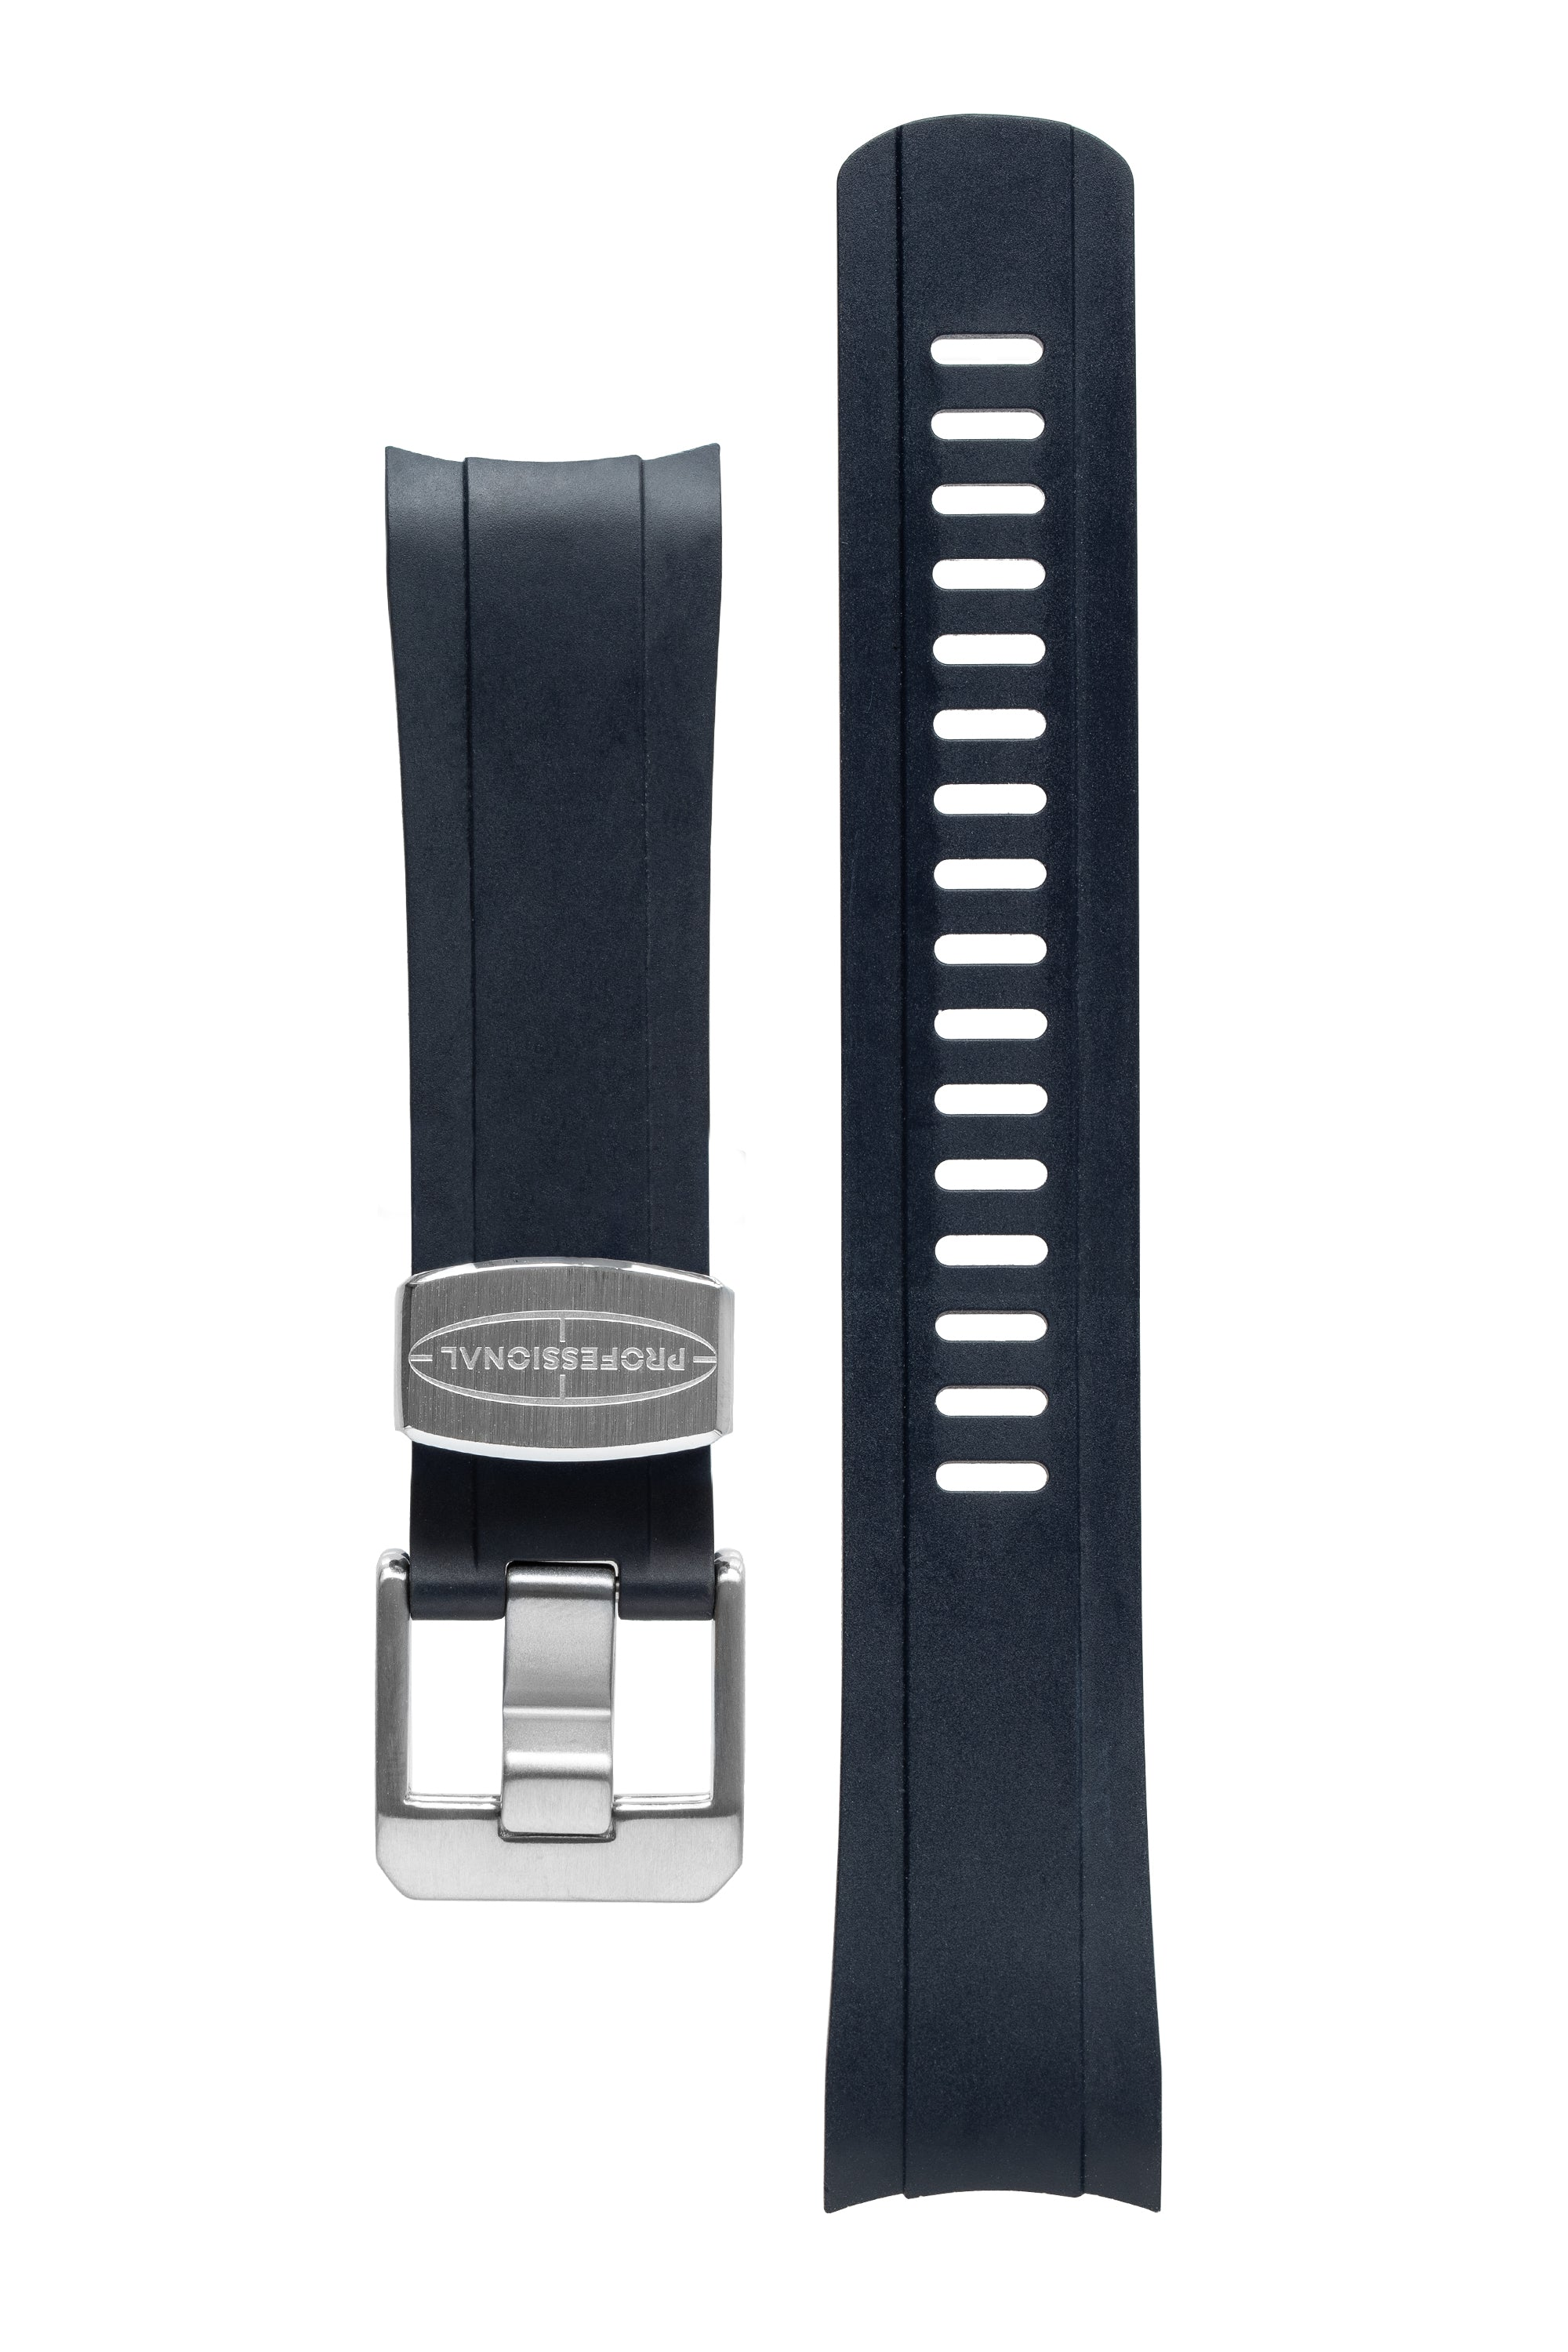 CRAFTER BLUE Rubber Watch Strap for Seiko SKX Series – NAVY BLUE with Rubber & Steel Keepers